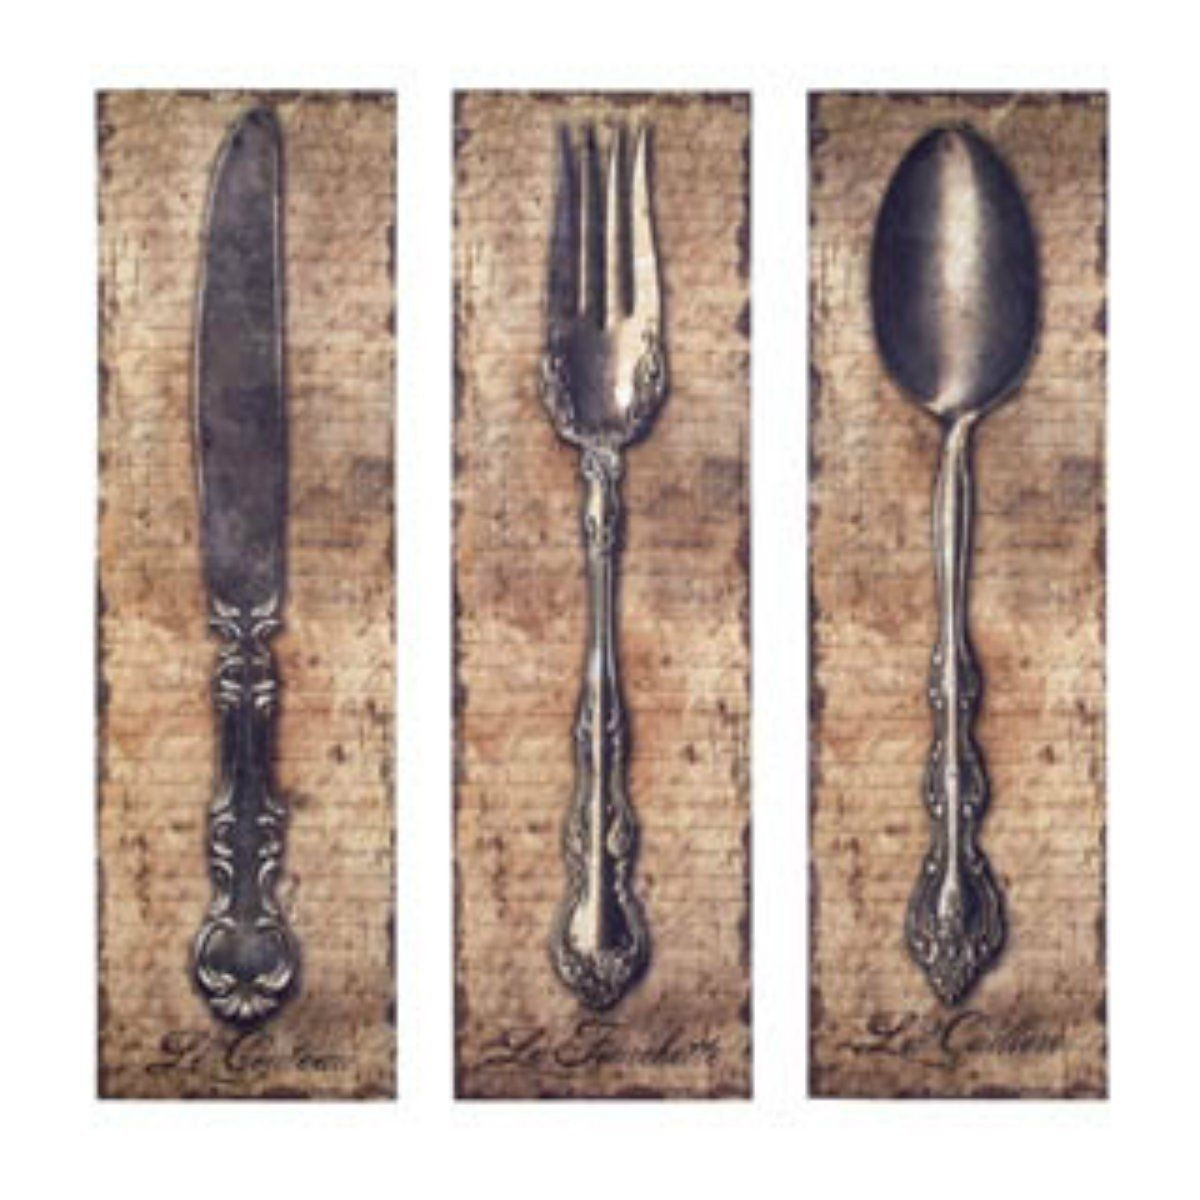 Vintage Kitchen Silverware Canvas Wall Art Spoon Knife Fork Intended For Current Fork And Spoon Wall Art (Gallery 15 of 20)